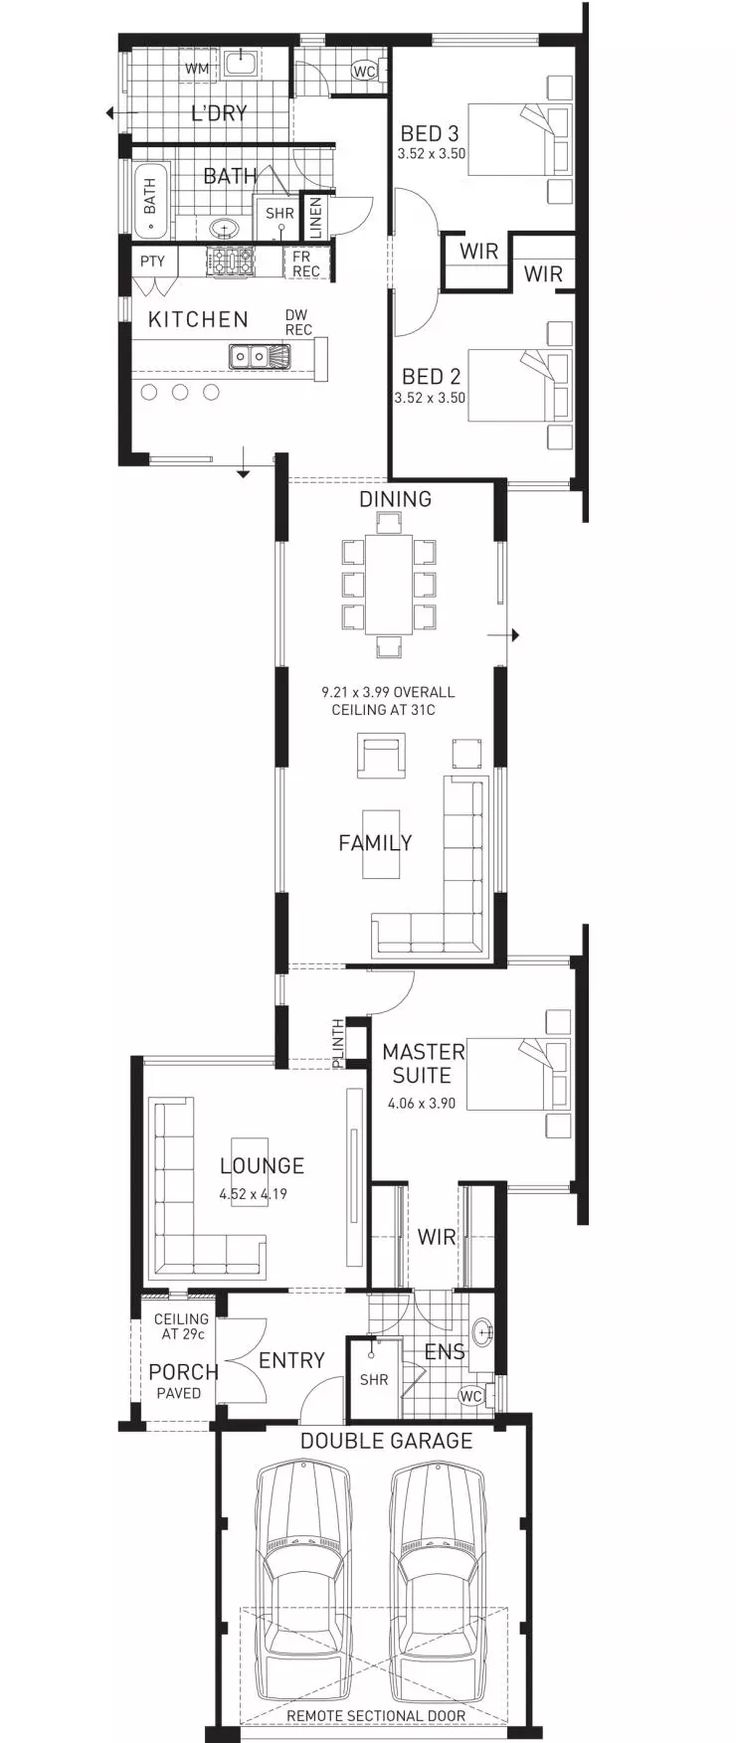 Colonnade, Single Storey Narrow Home Floor Plan, WA